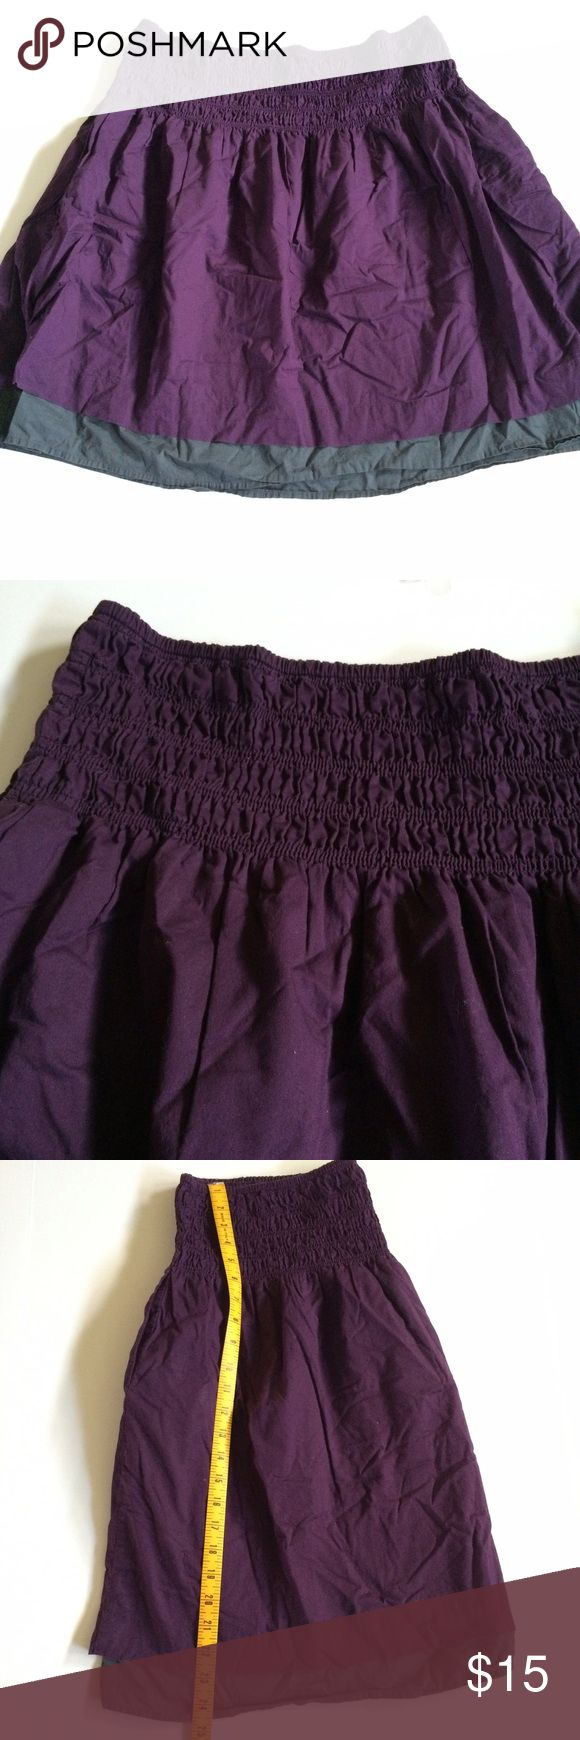 Gap Skirt Gap skirt in deep purple and gray. Has large band at waist Gap Skirts